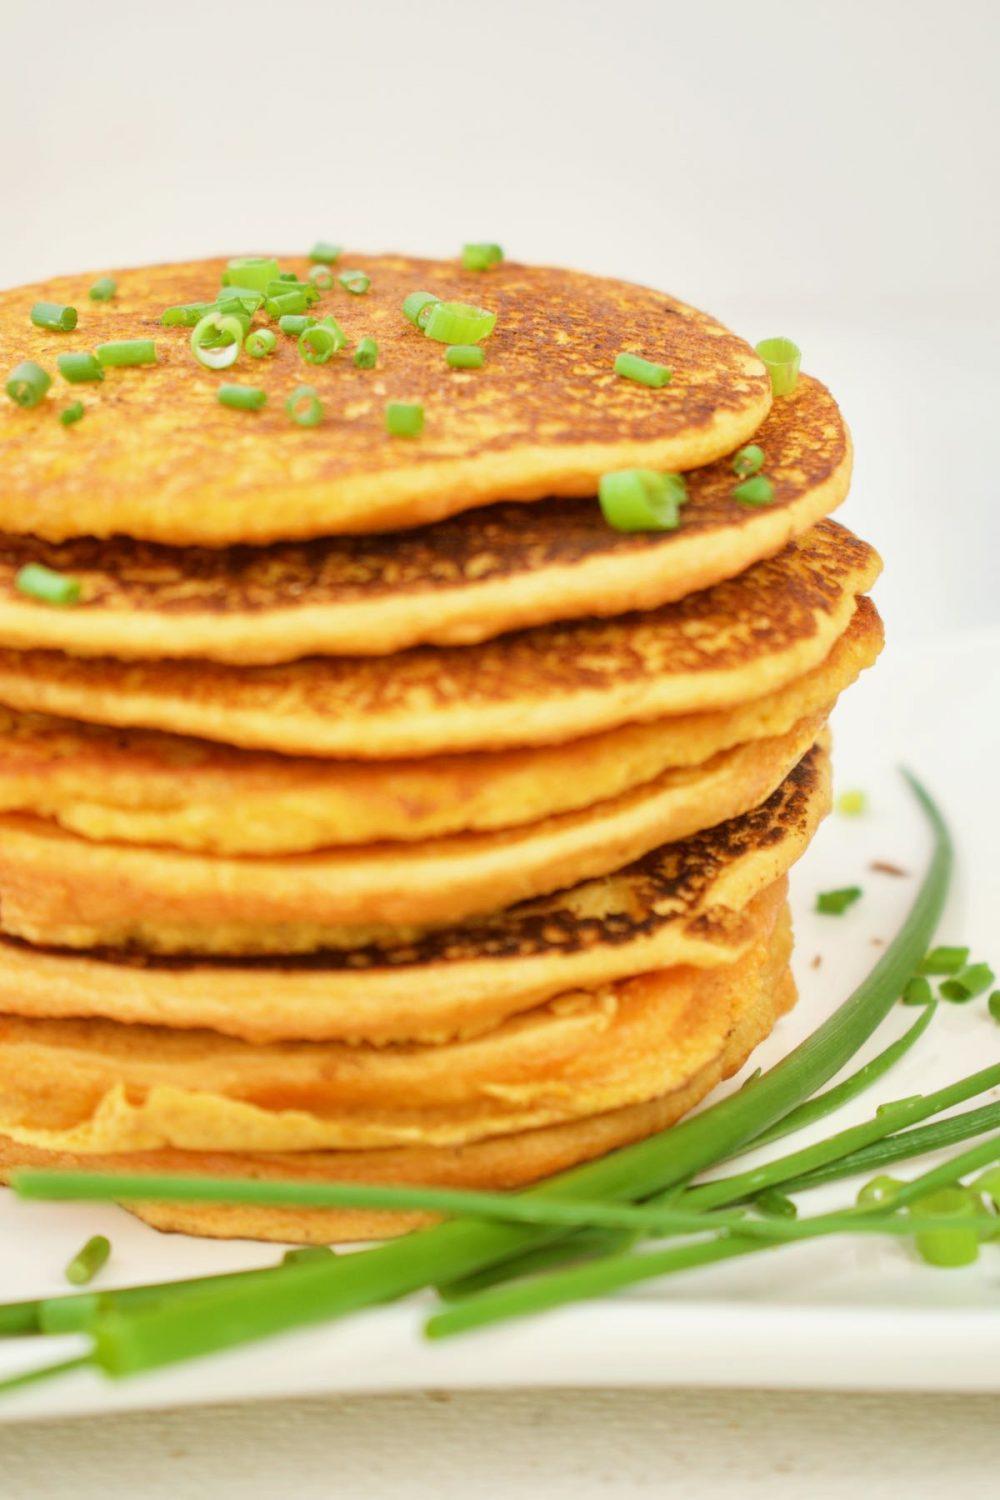 The finished red lentil flatbreads are stacked up on a plate, with bright green chives as a garnish.